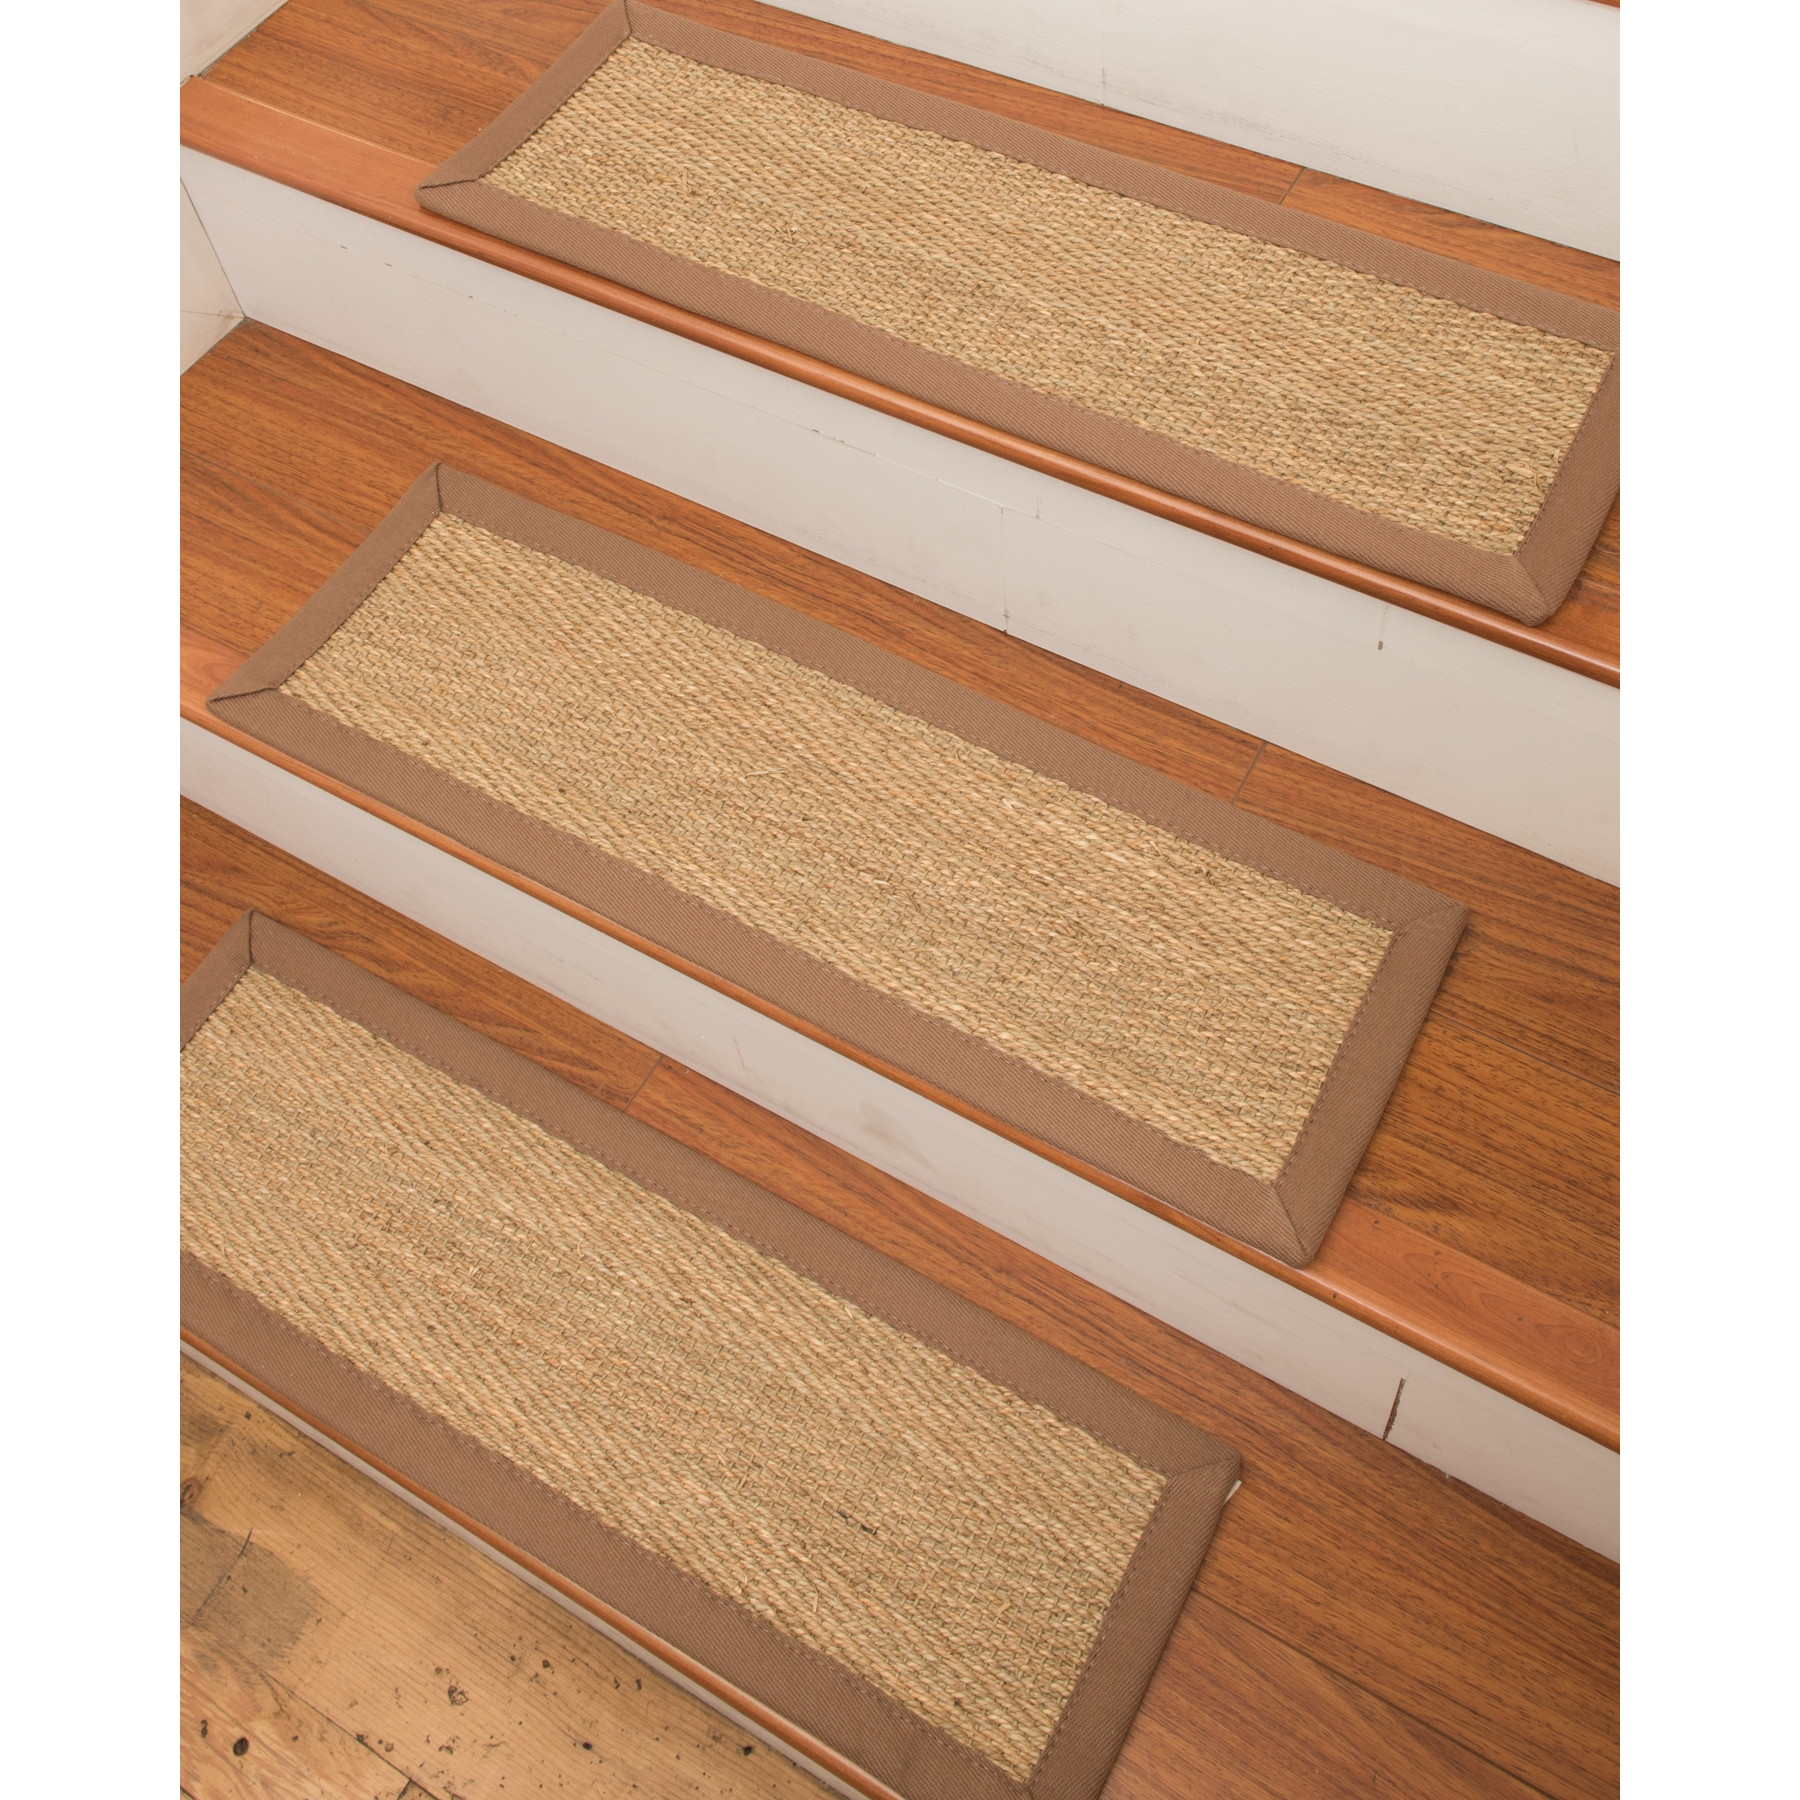 Natural Area Rugs Costa Rica Seagrass Carpet Beige Stair Tread Inside Natural Stair Tread Rugs (Image 8 of 15)